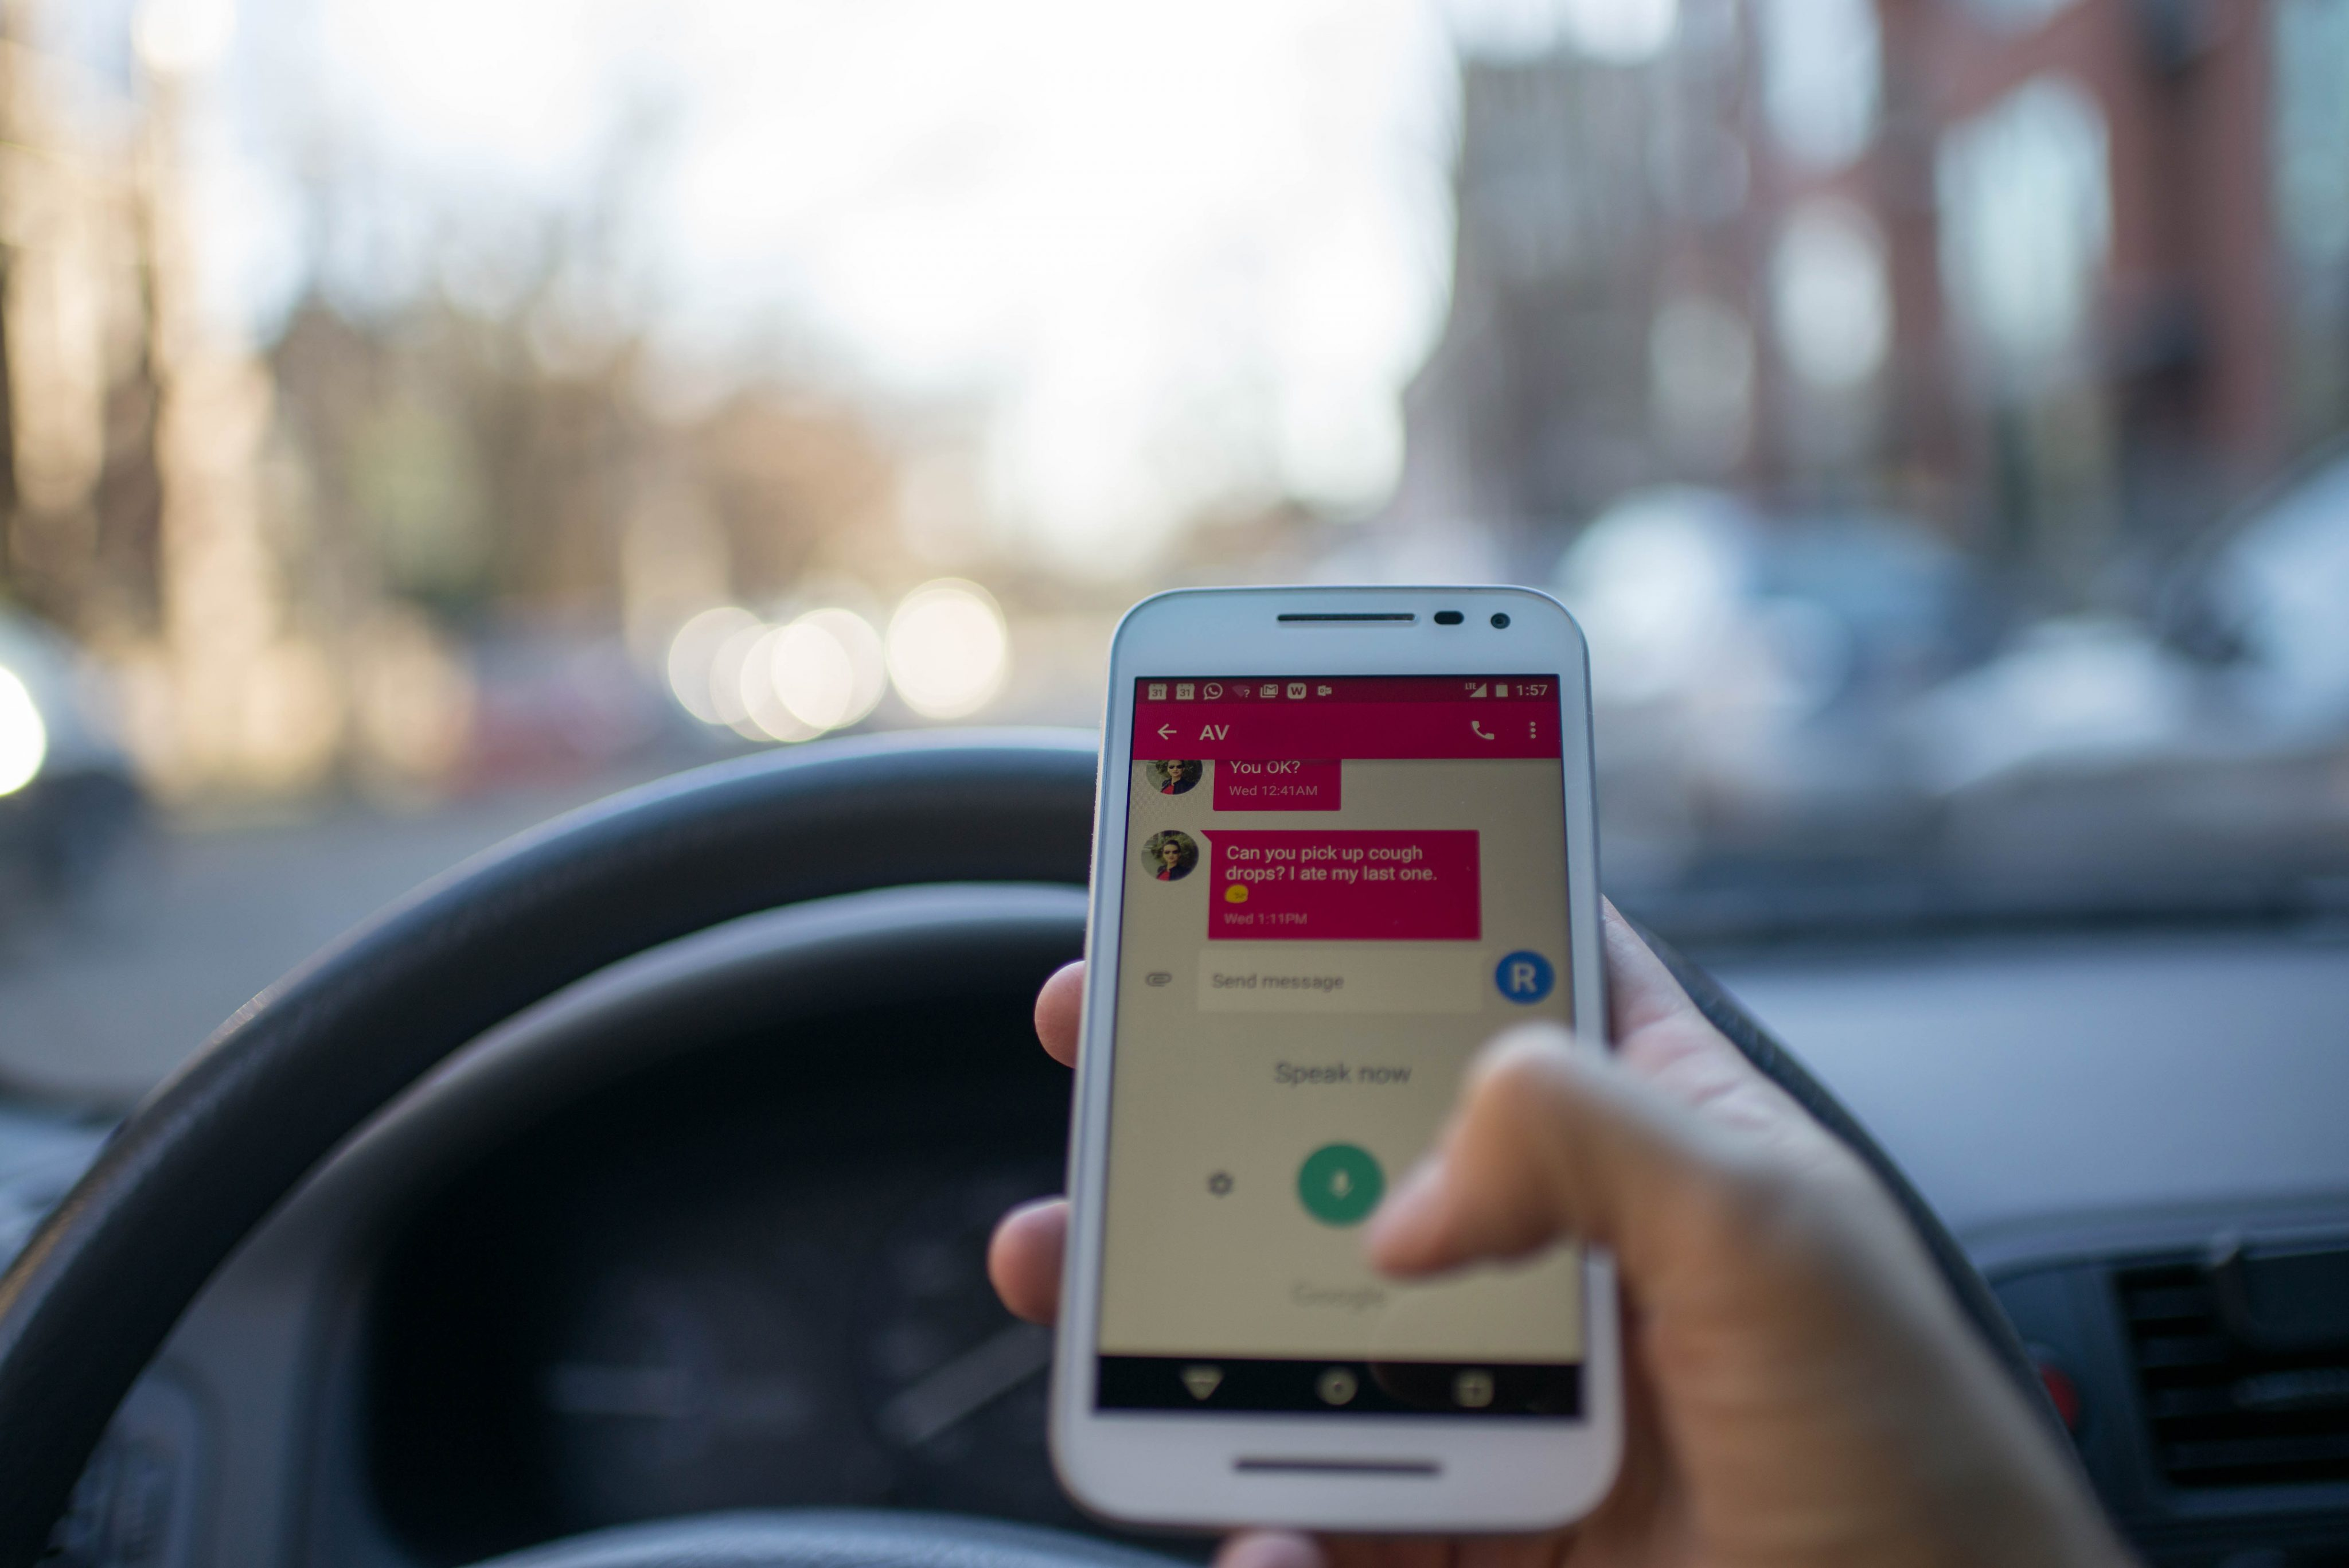 Australia to get phone-detecting traffic cams in bid to curb distracted driving australia-to-get-phone-detecting-traffic-cams-in-bid-to-curb-distracted-driving